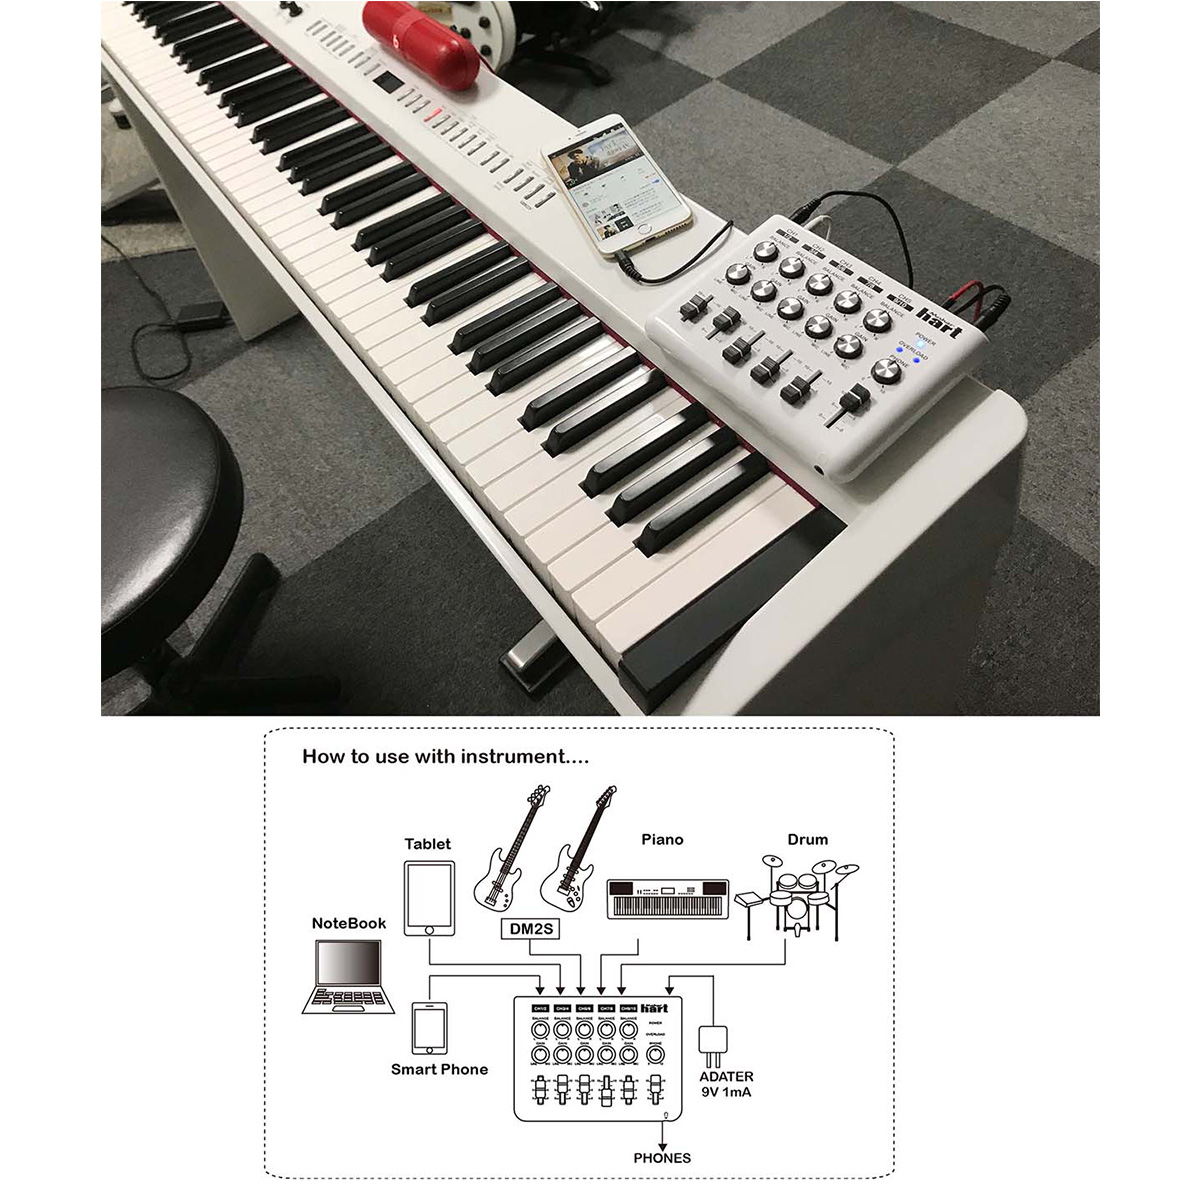 Loop mixer Application for Instrument